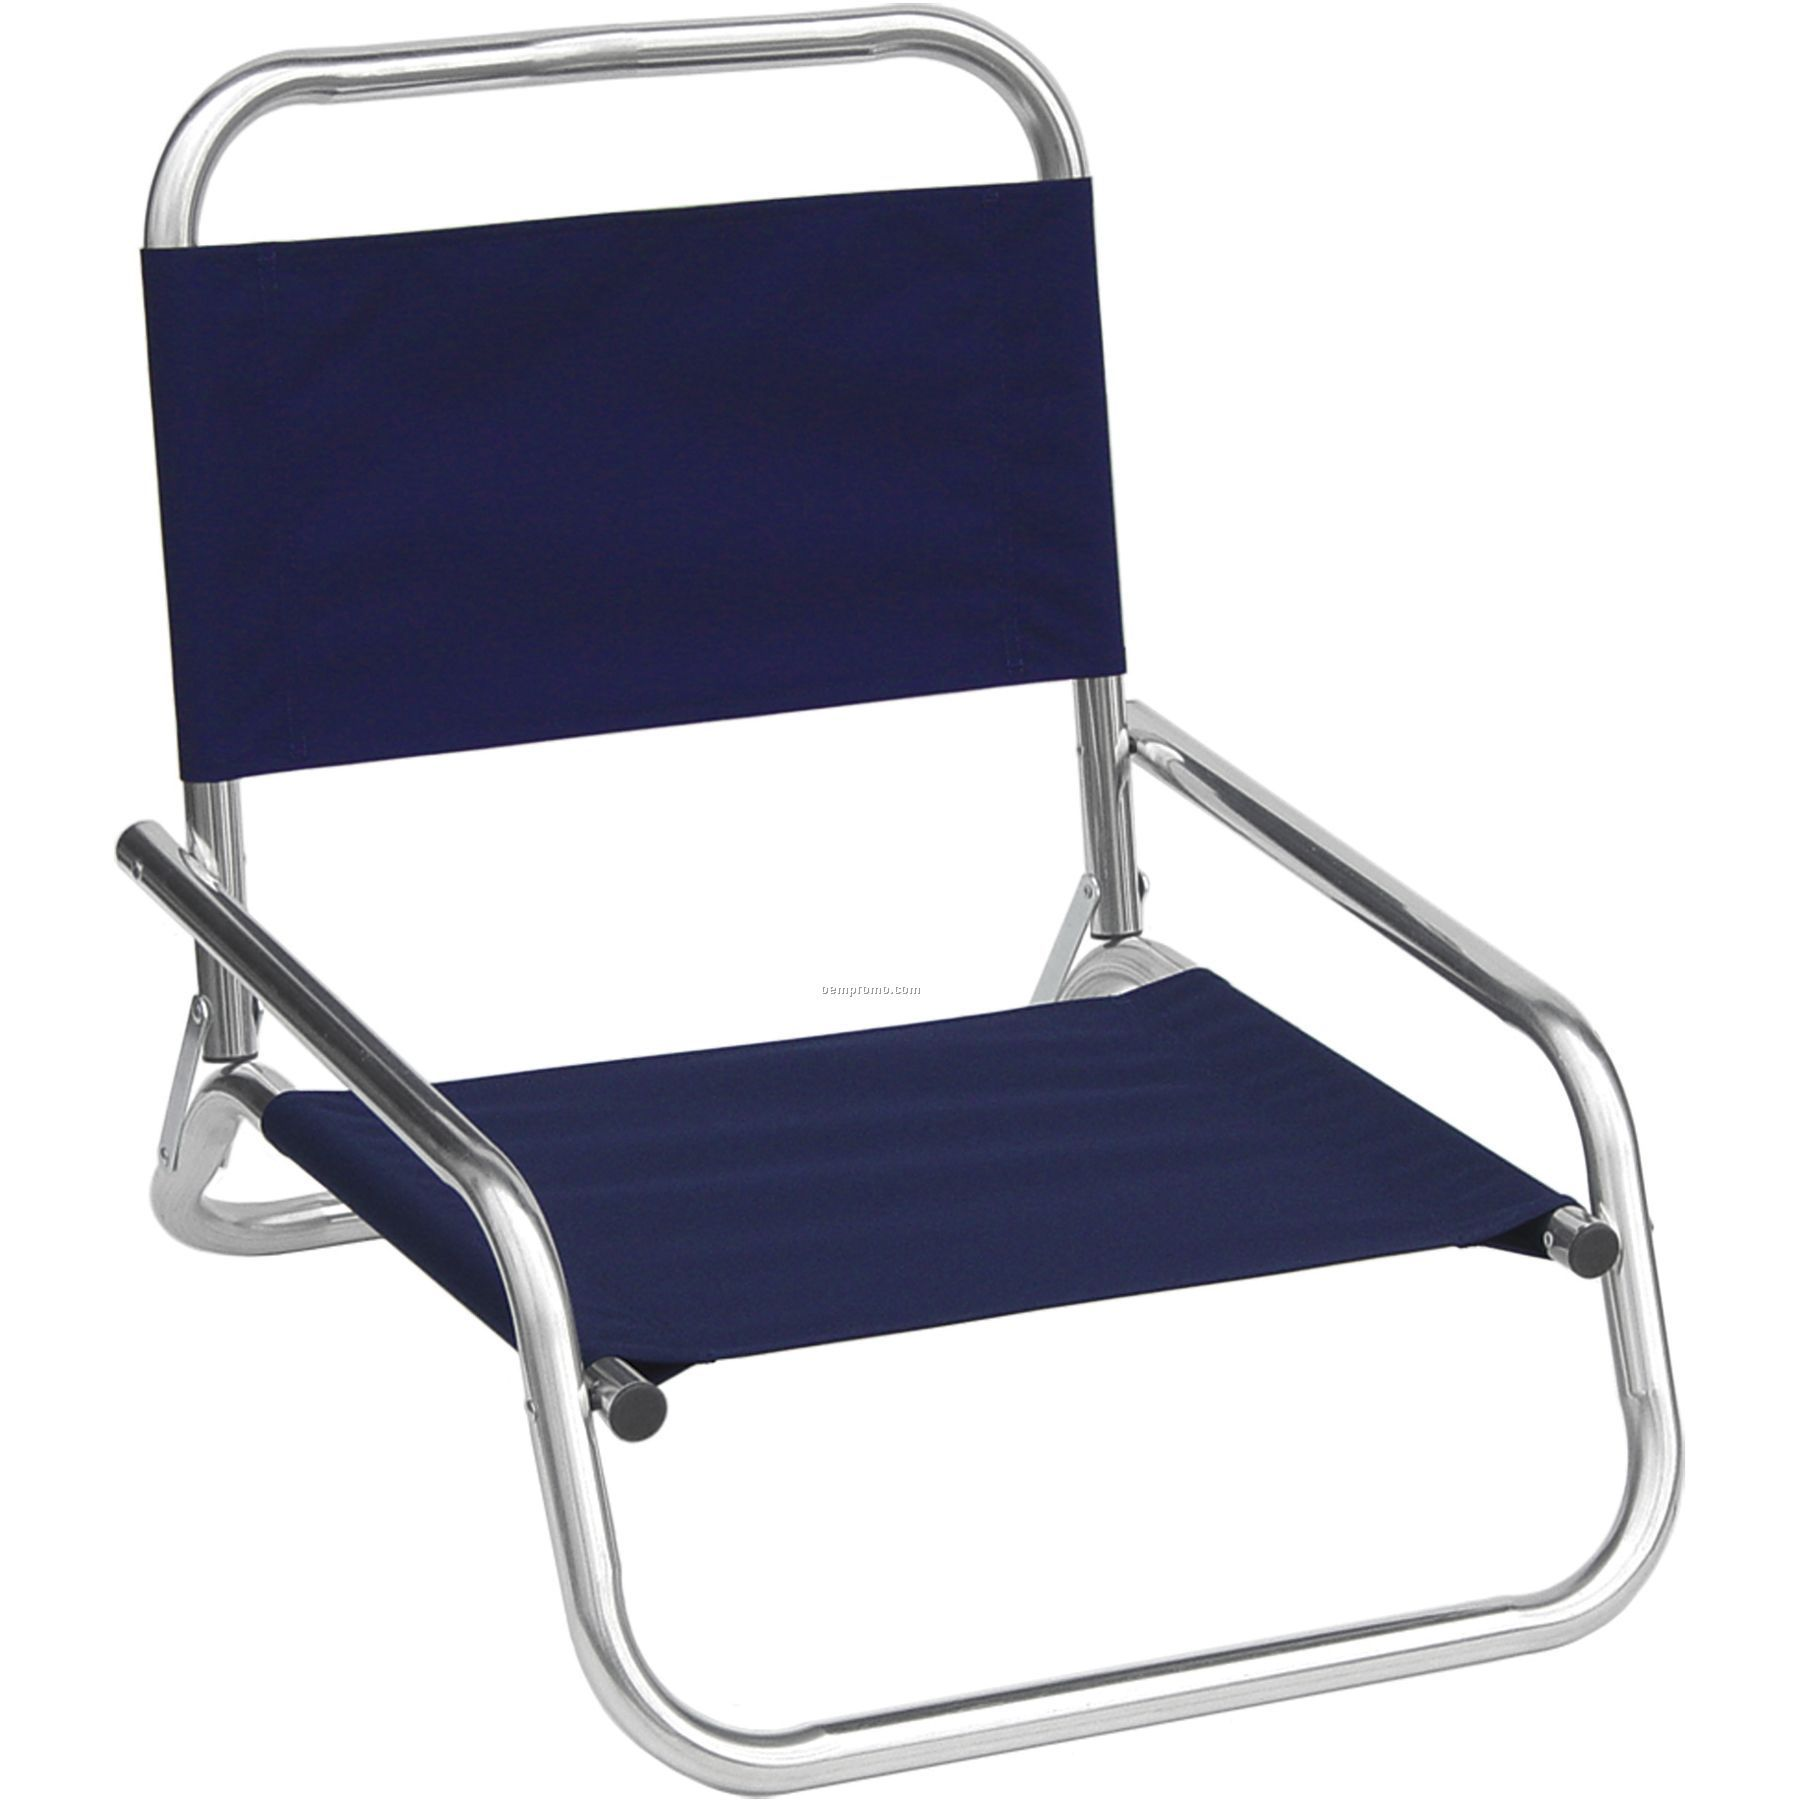 Folding Low Beach Chair Exercise Ideal Price